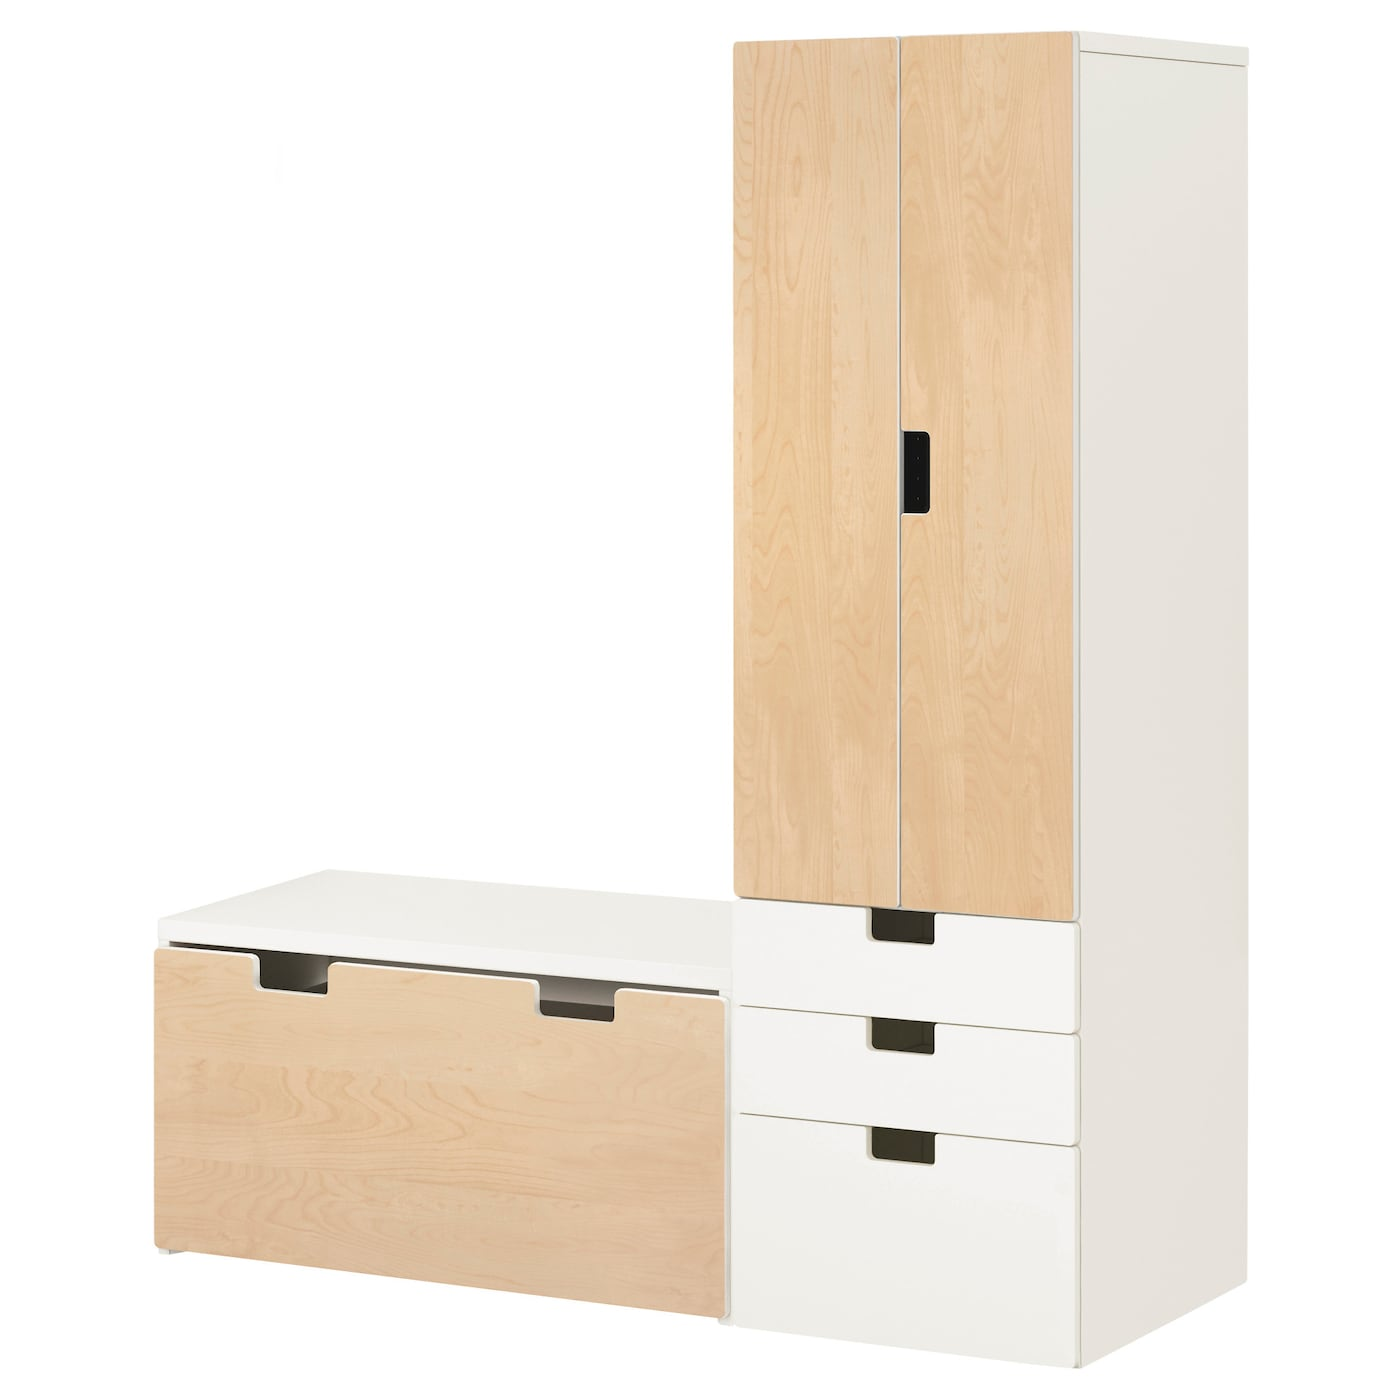 stuva storage combination with bench white birch. Black Bedroom Furniture Sets. Home Design Ideas